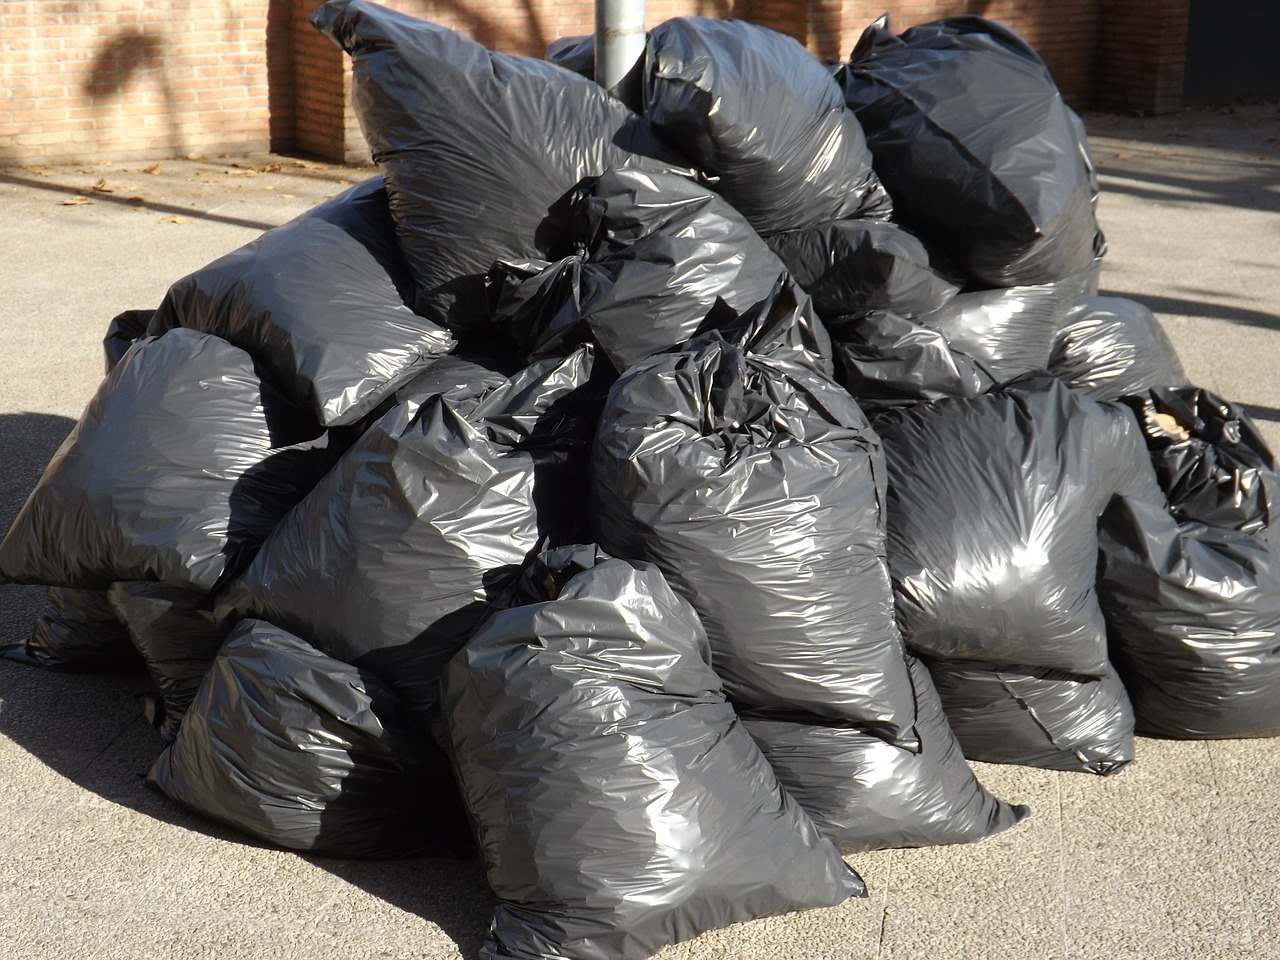 What Are The Best Trash Bags For The Environment (And Why)